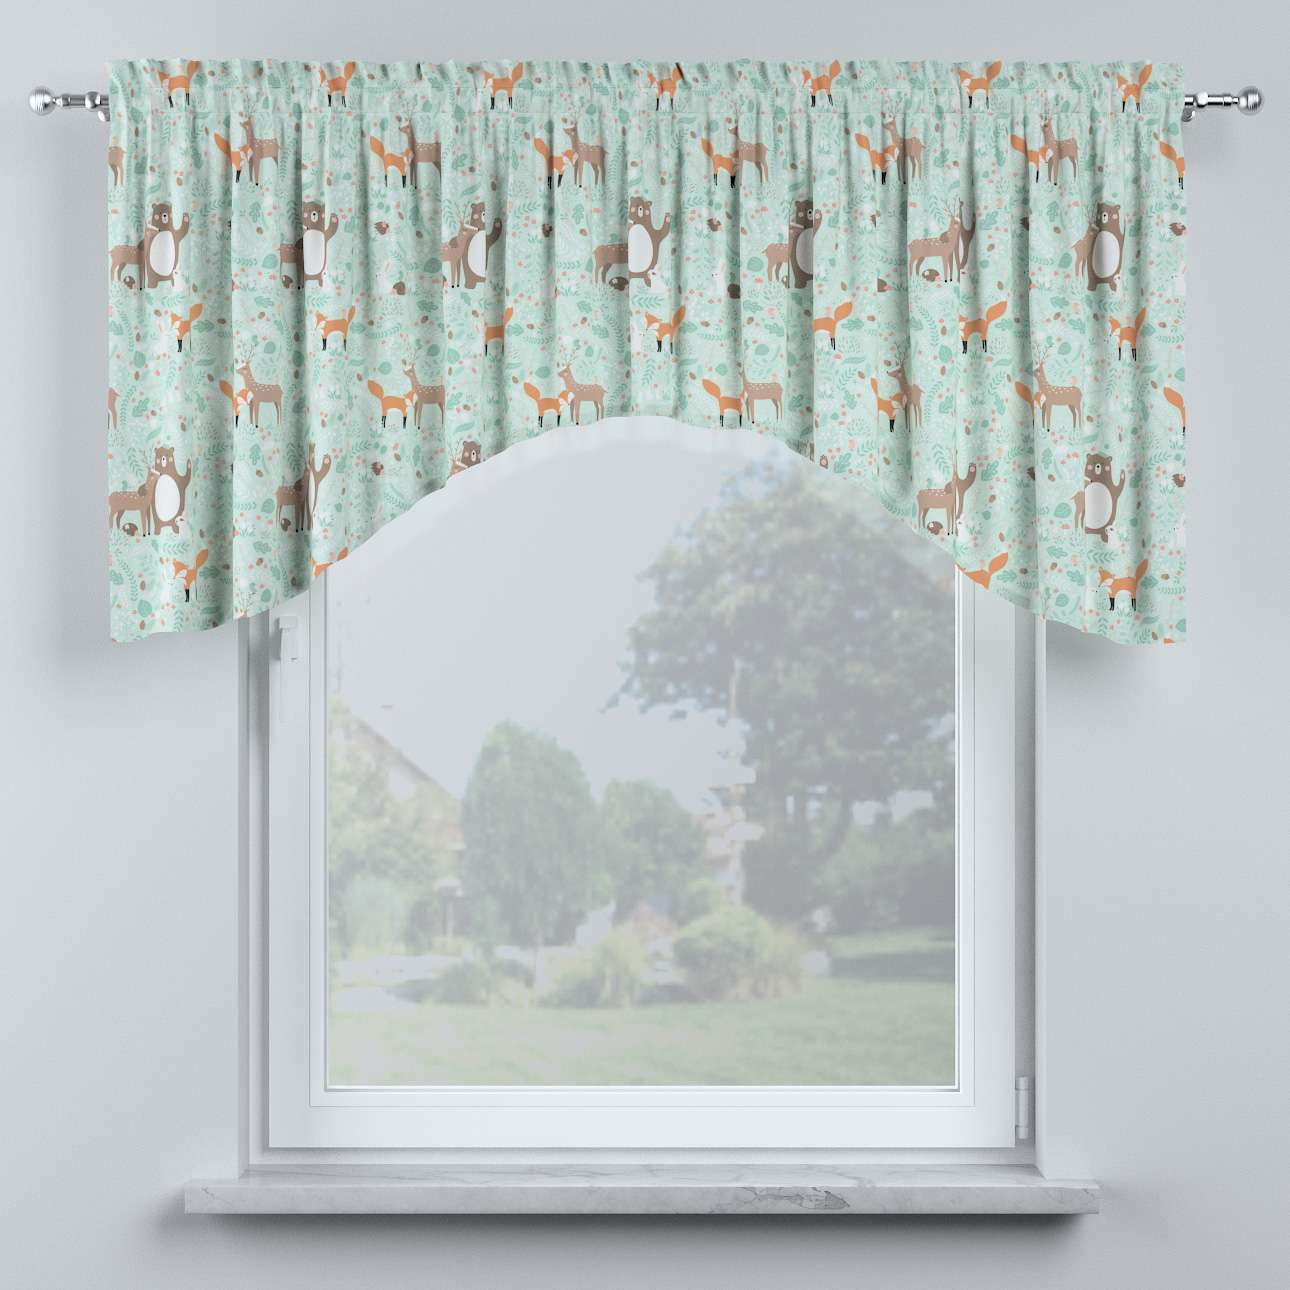 Bow lambrequin in collection Magic Collection, fabric: 500-15